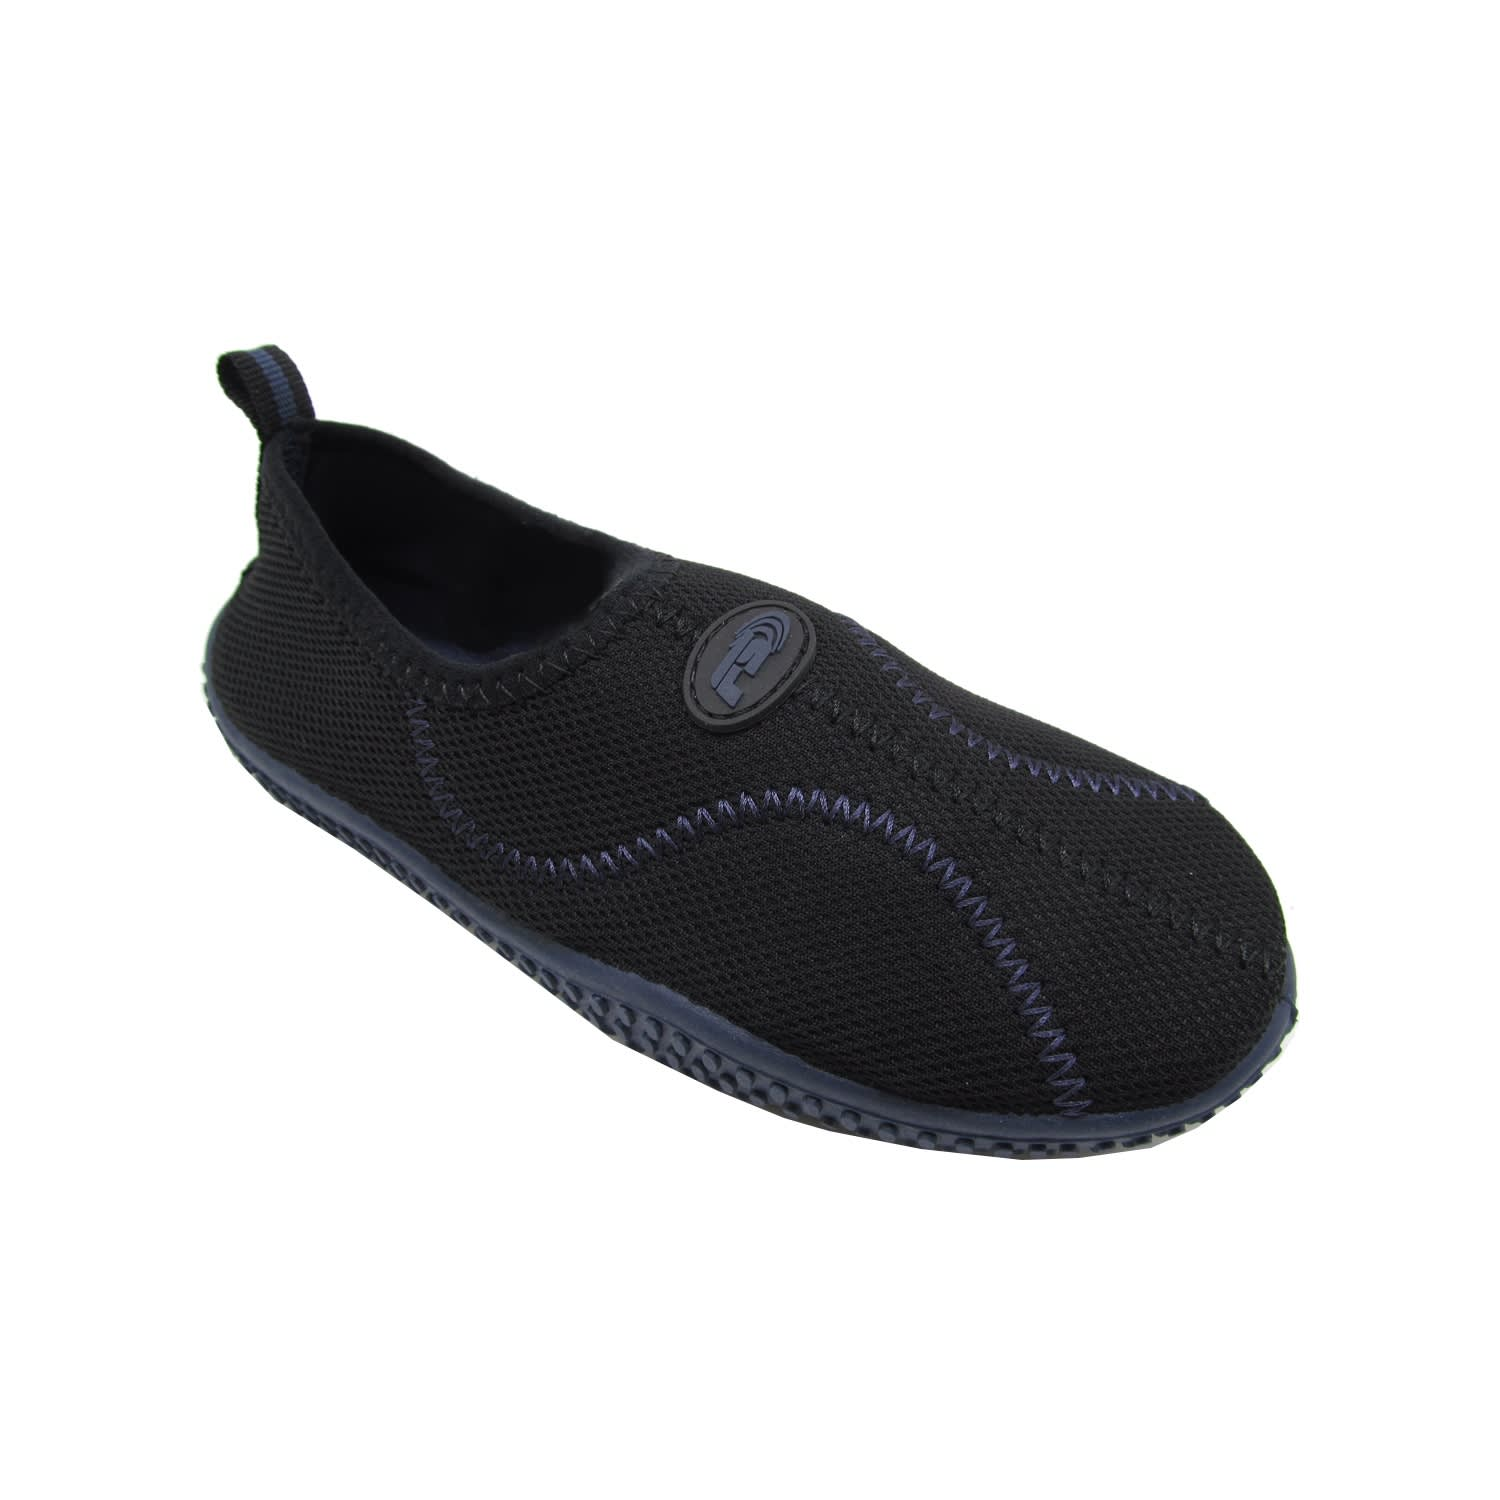 Freesport Slip-On Boys Youth Aqua Booties Navy